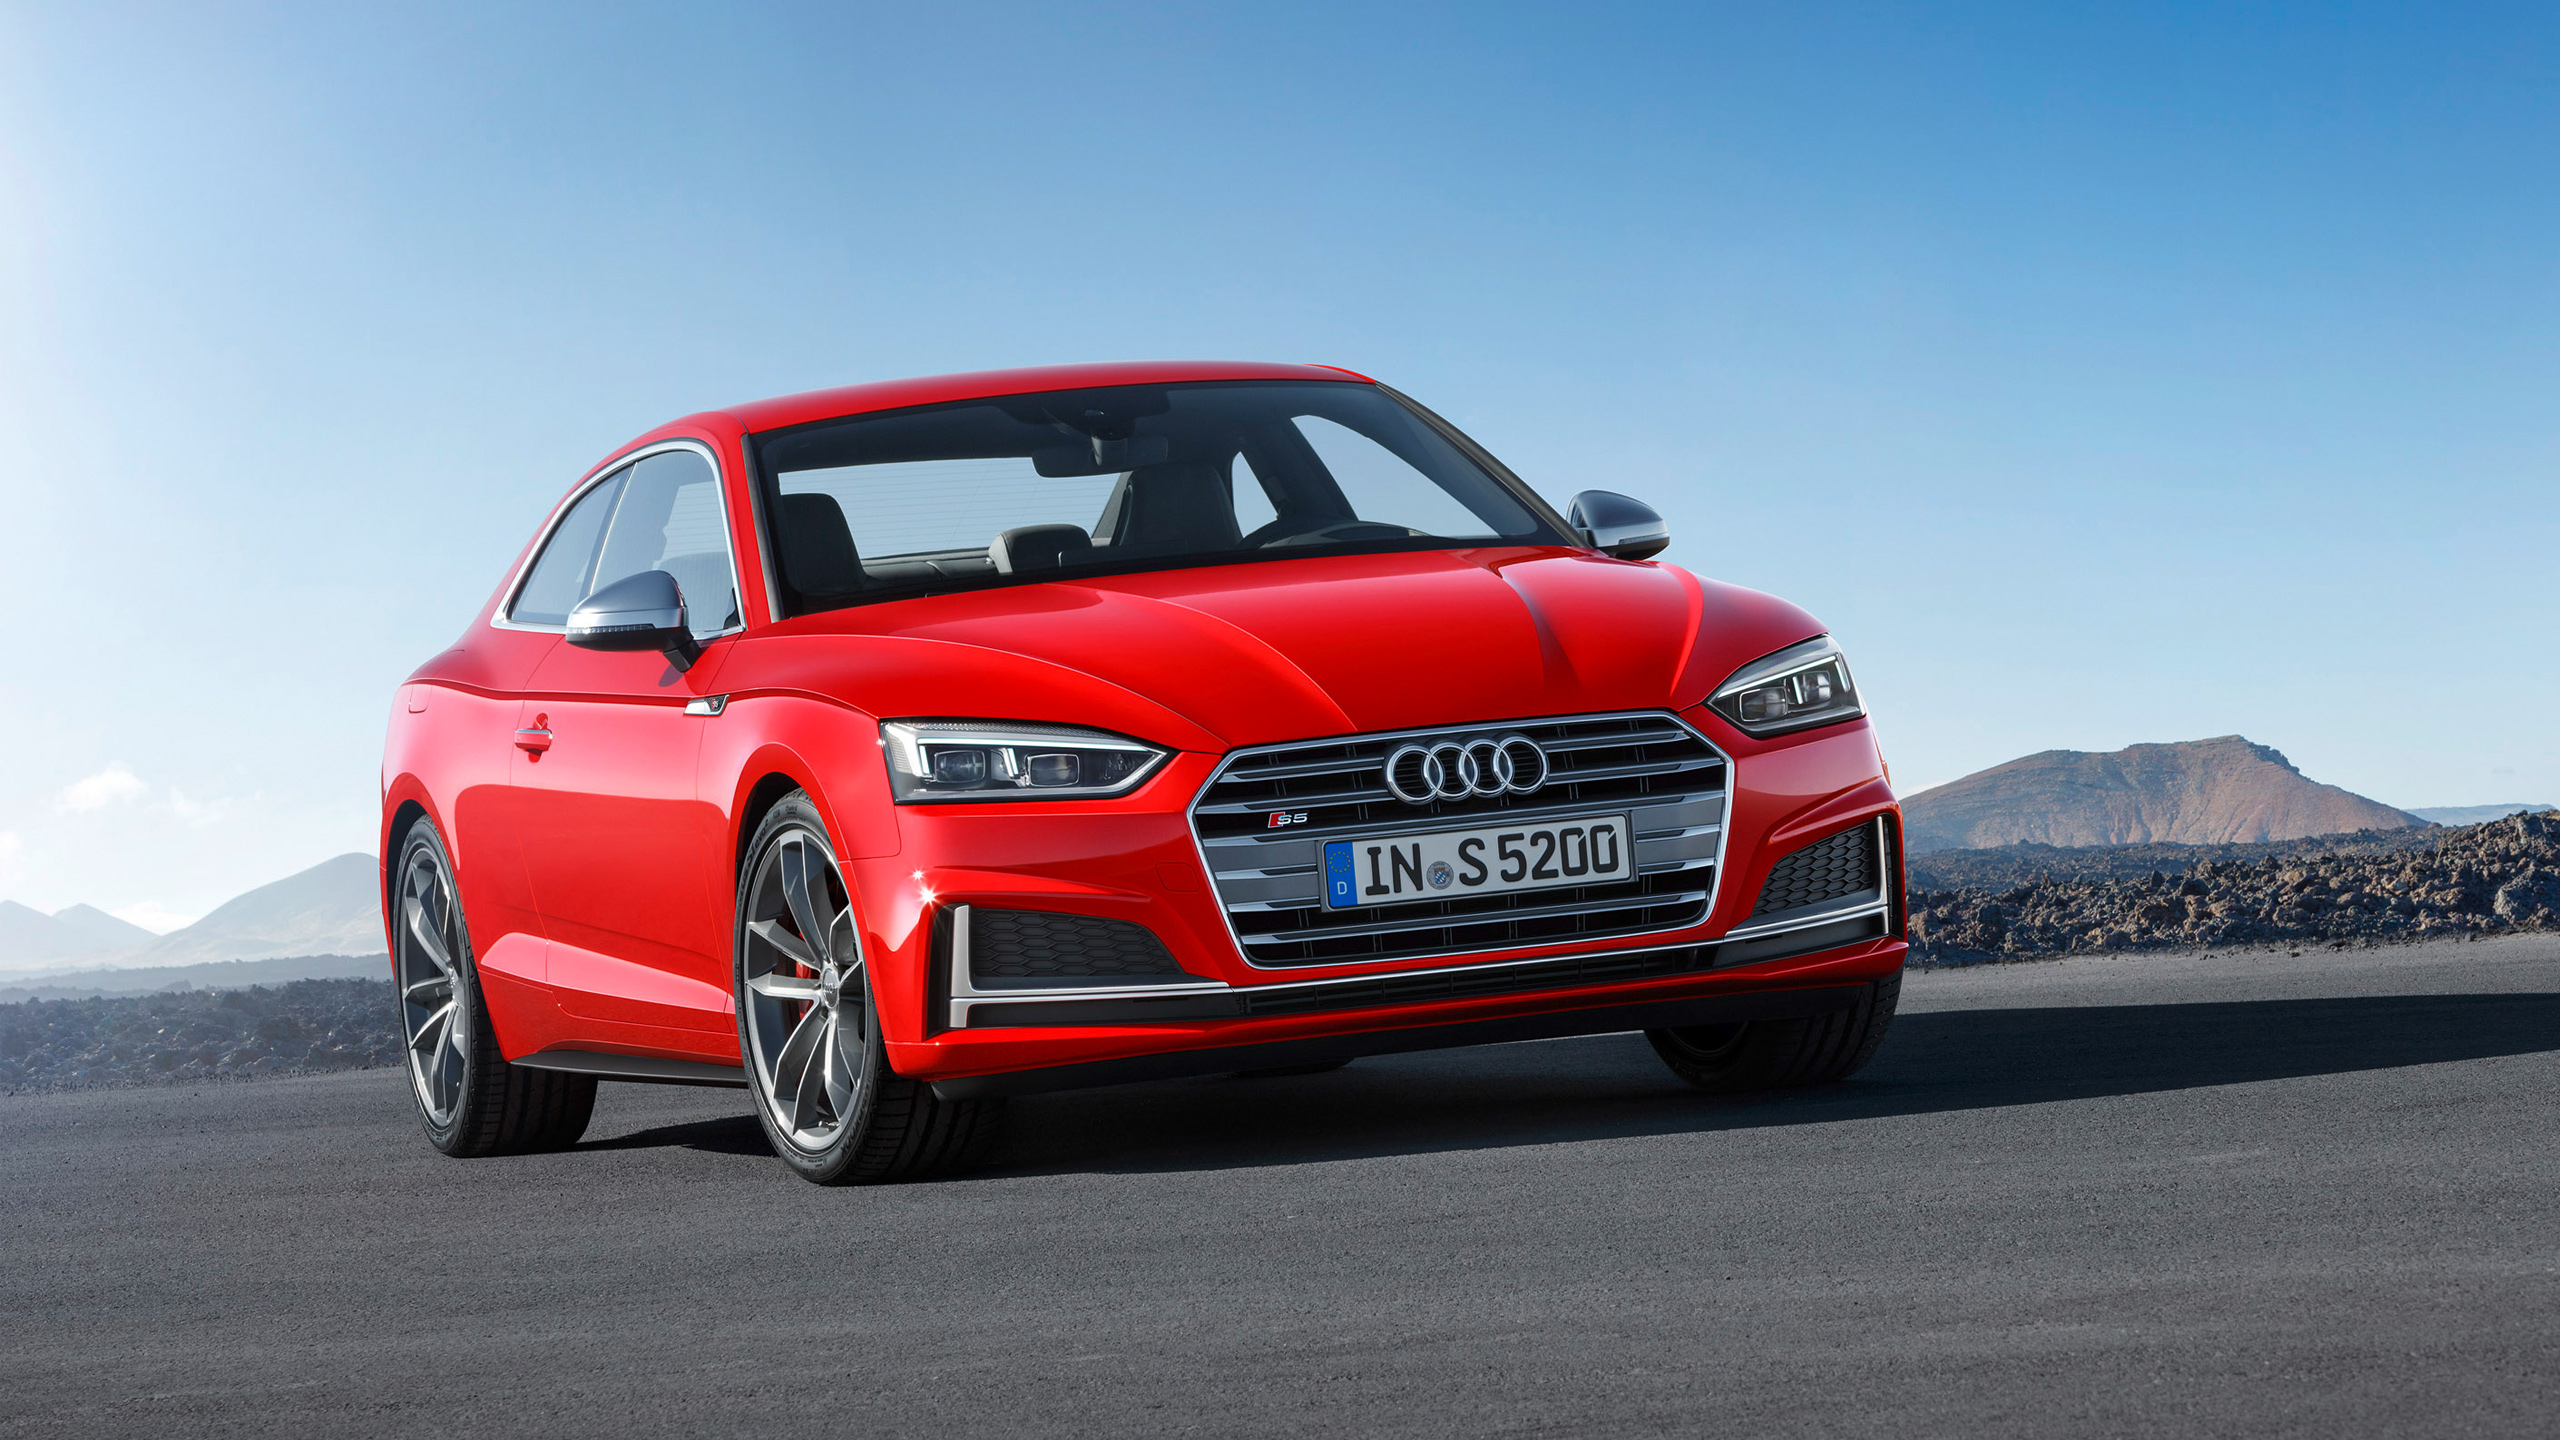 2016 Audi S5 Coupe Wallpaper Hd Car Wallpapers Id 6587